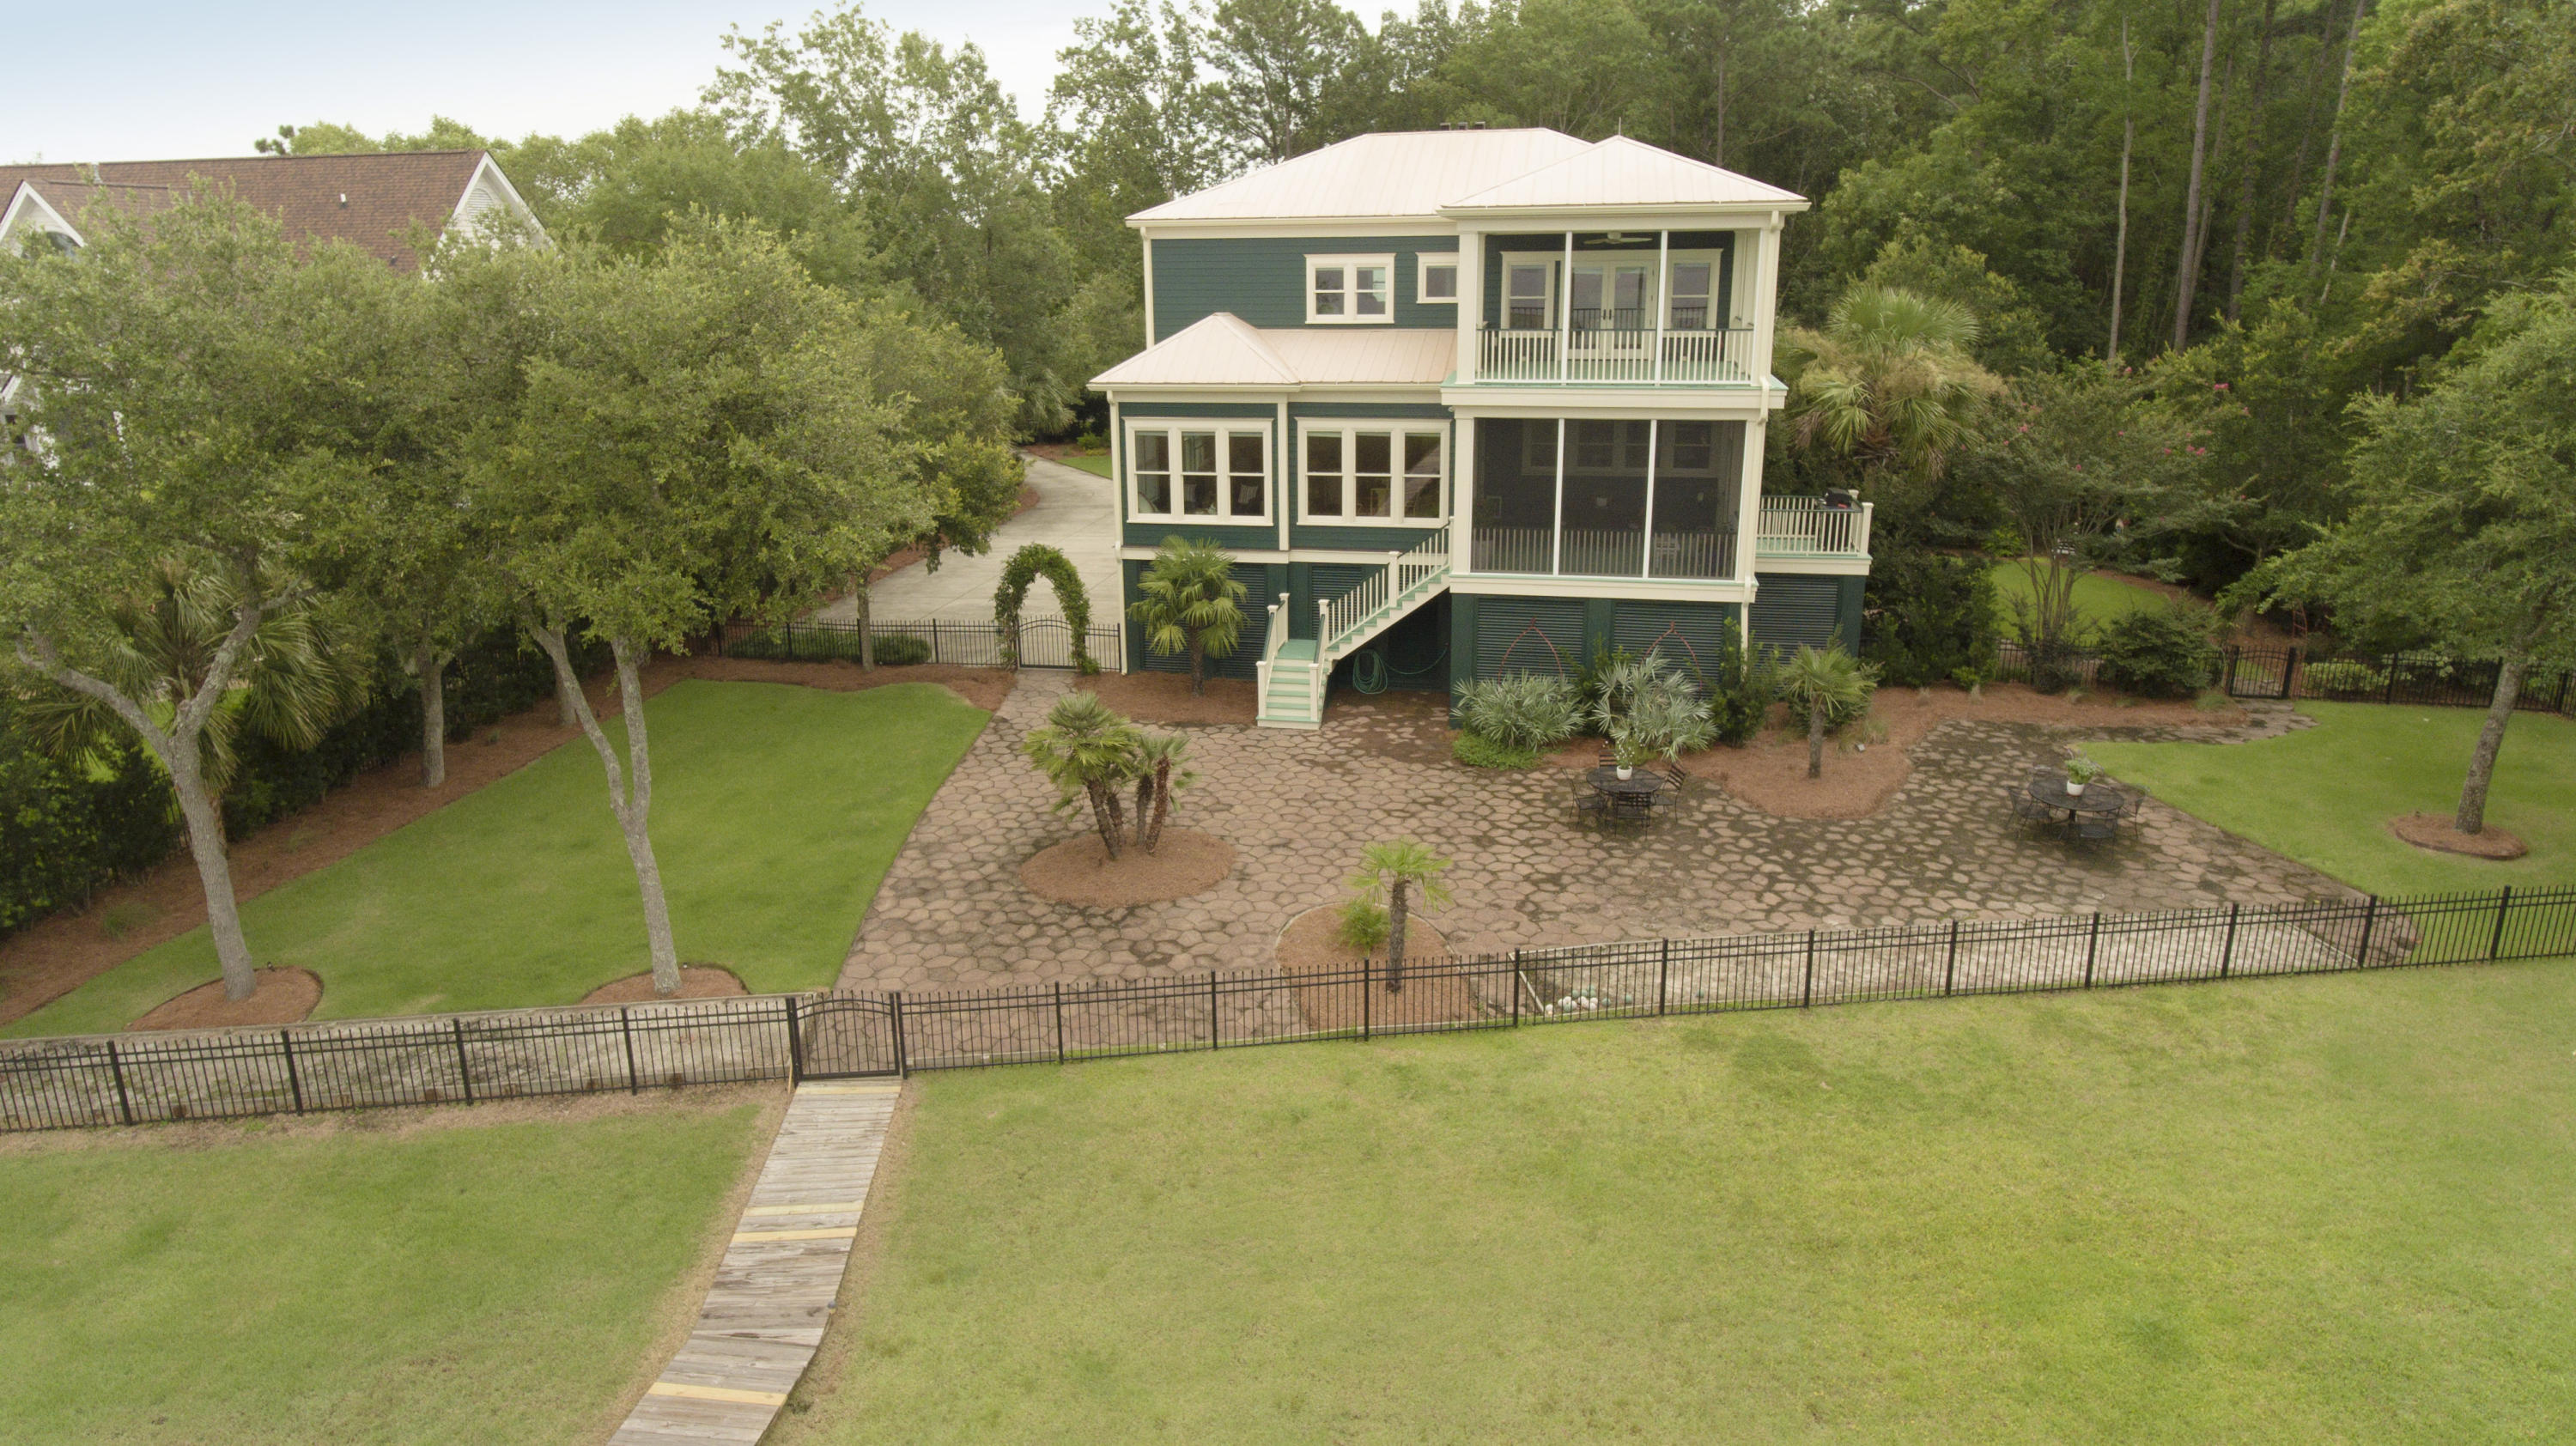 Rivertowne On The Wando Homes For Sale - 2212 Hartfords Bluff, Mount Pleasant, SC - 59